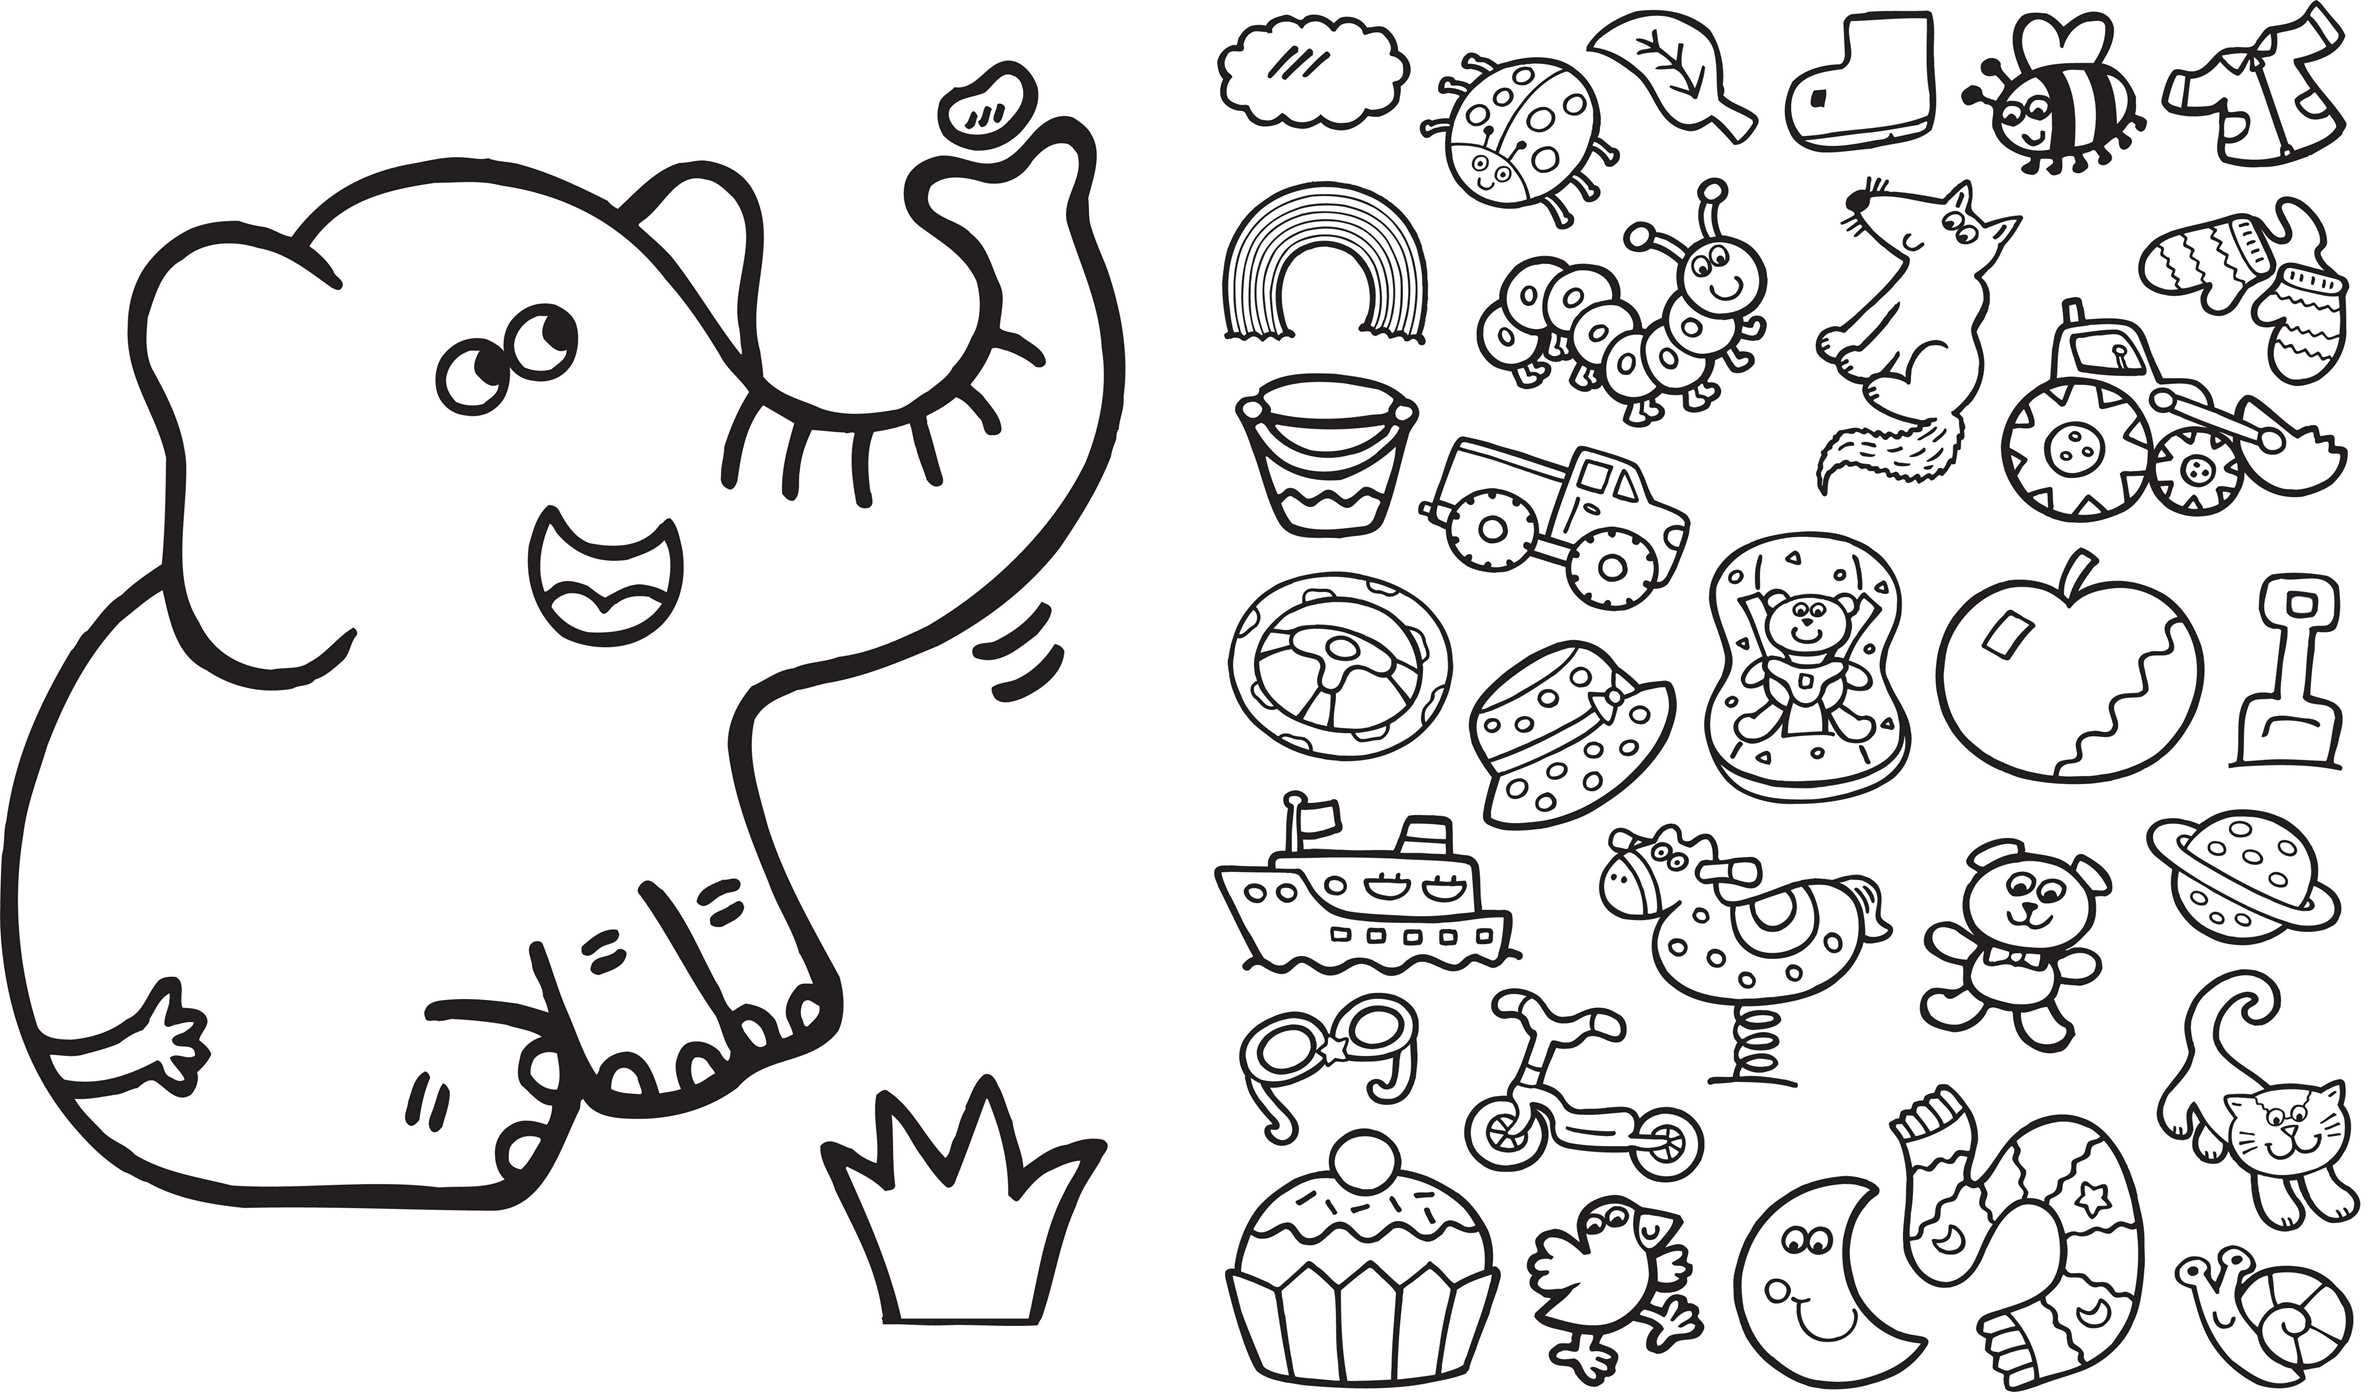 Giant Coloring Books For Toddlers  Big Coloring Pages For 13 Year Olds 11 Old Girls Free 6931